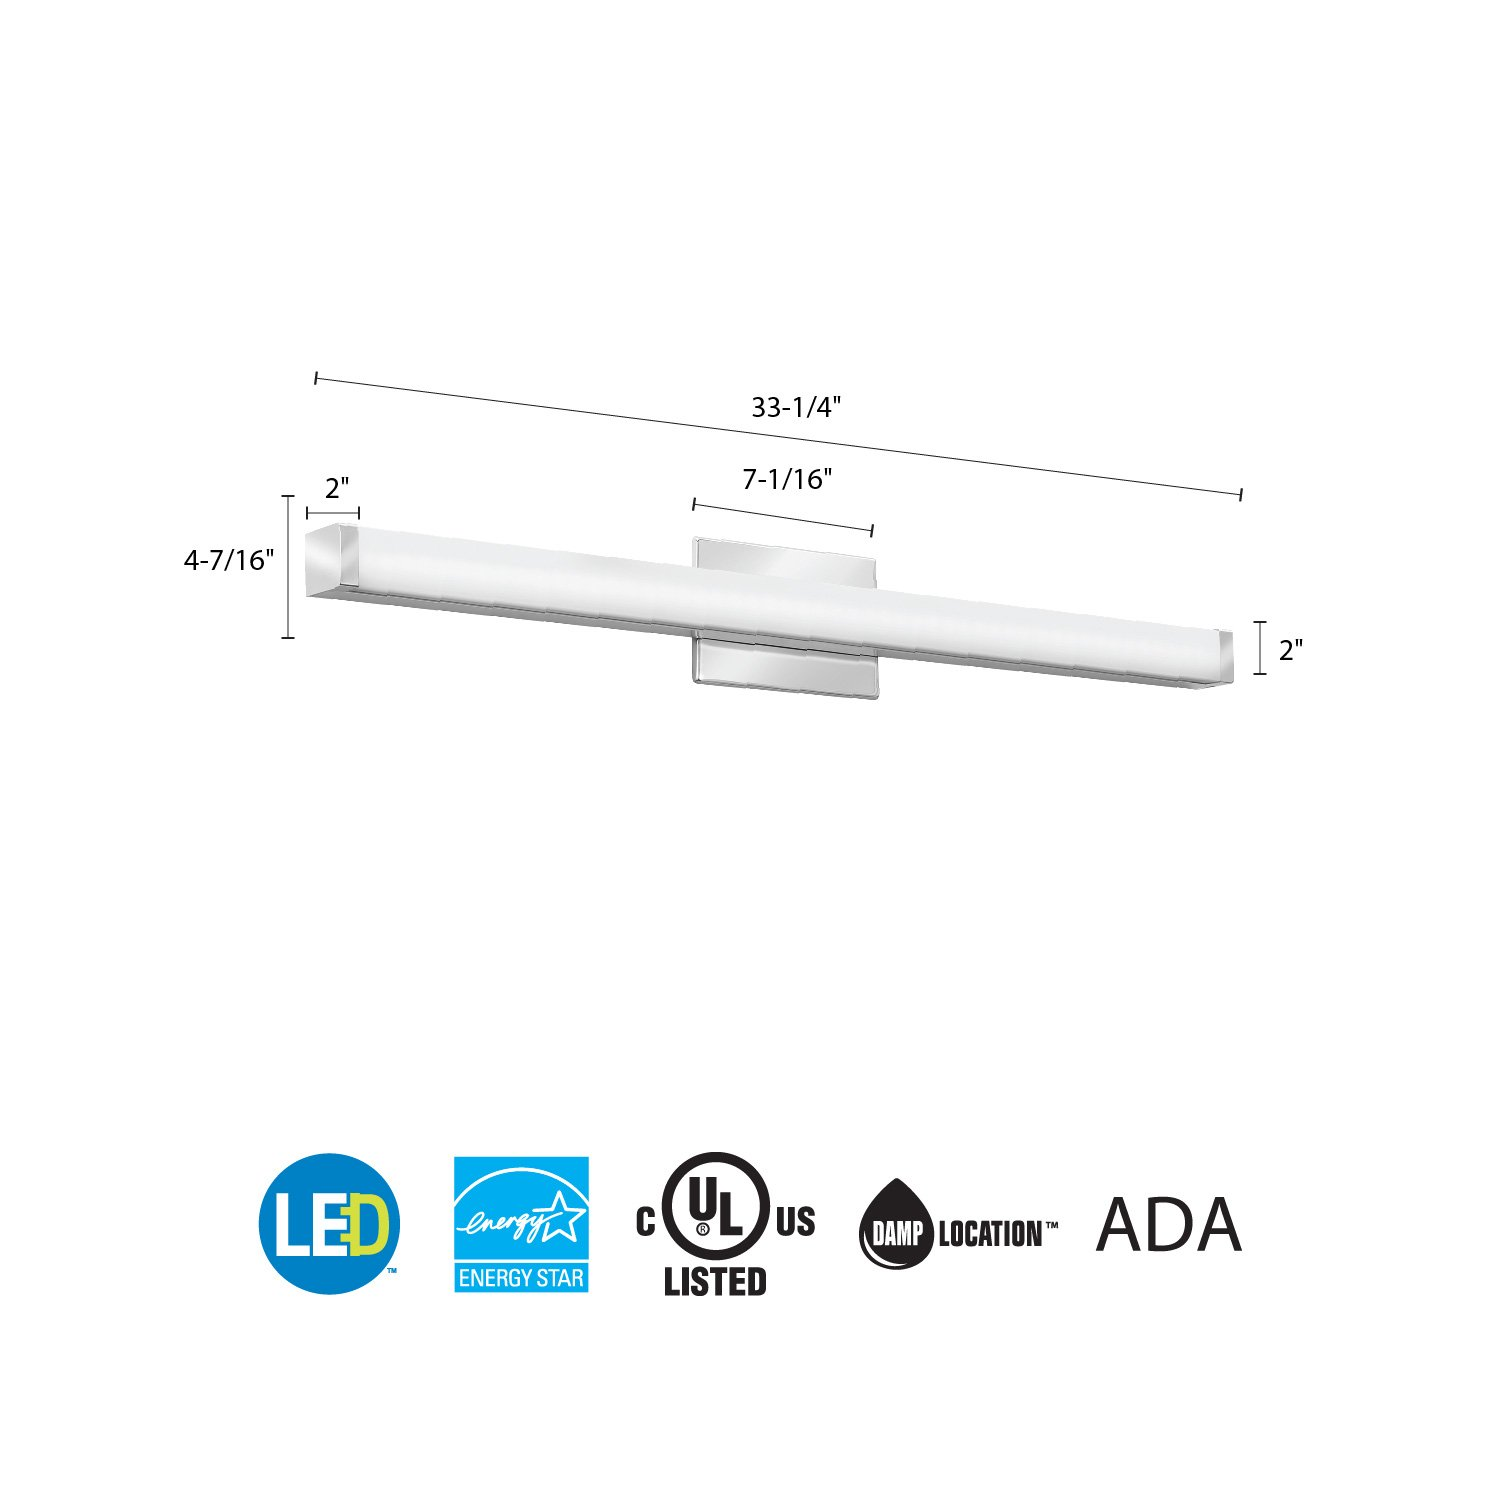 Lithonia Lighting Contemporary Square 3k Led Vanity Light 3 Foot 556cn Blinking Schematic Star Travel International And Domestic Chrome